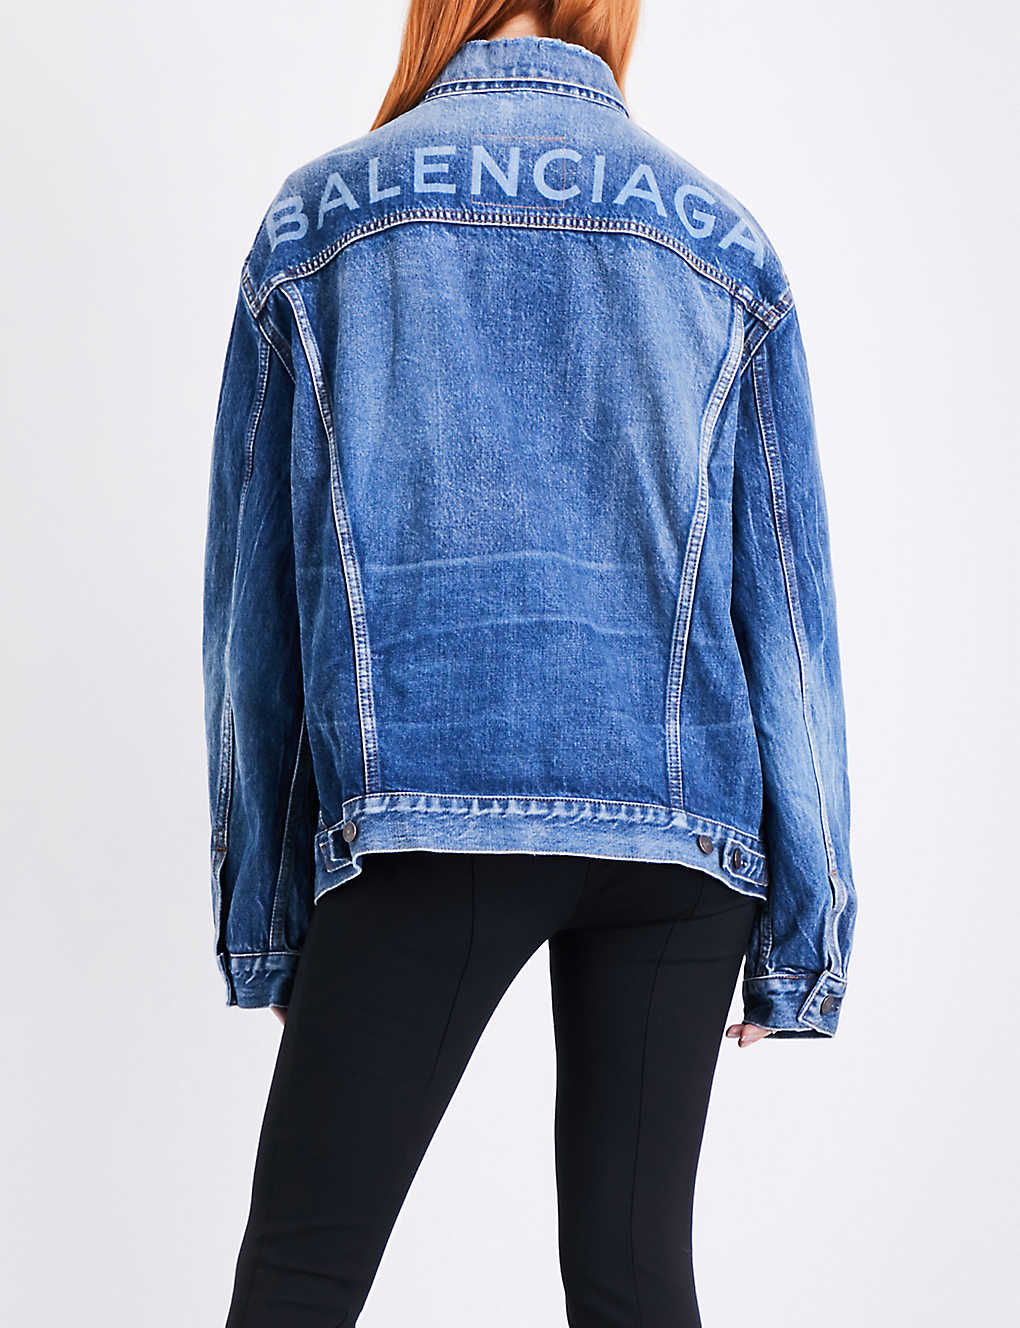 d985bc905f325 BALENCIAGA - Like A Man oversized denim jacket